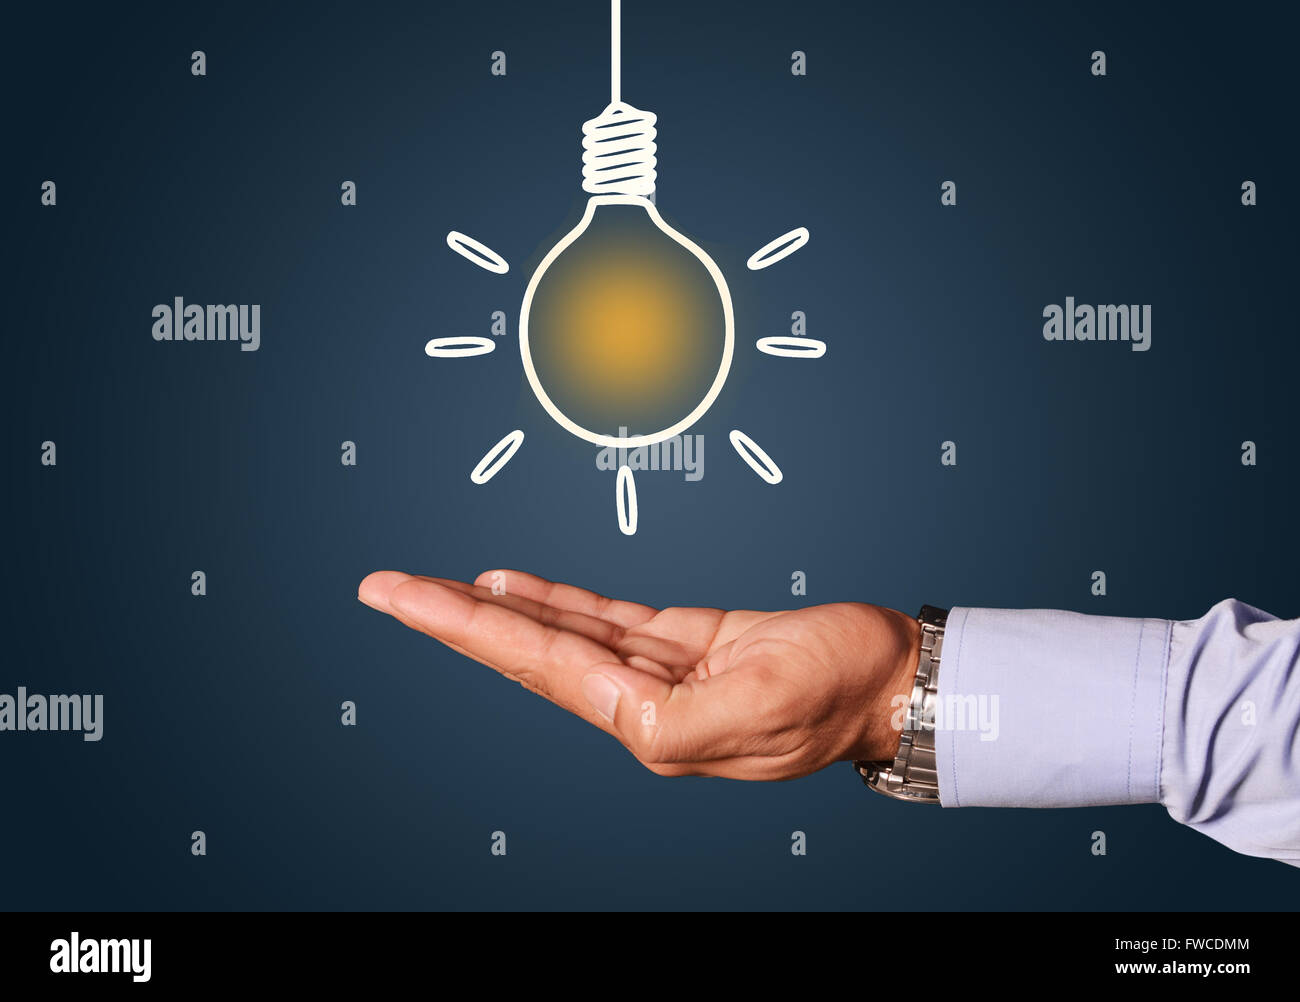 Hand on an idea bulb illustrations concept blue background. - Stock Image